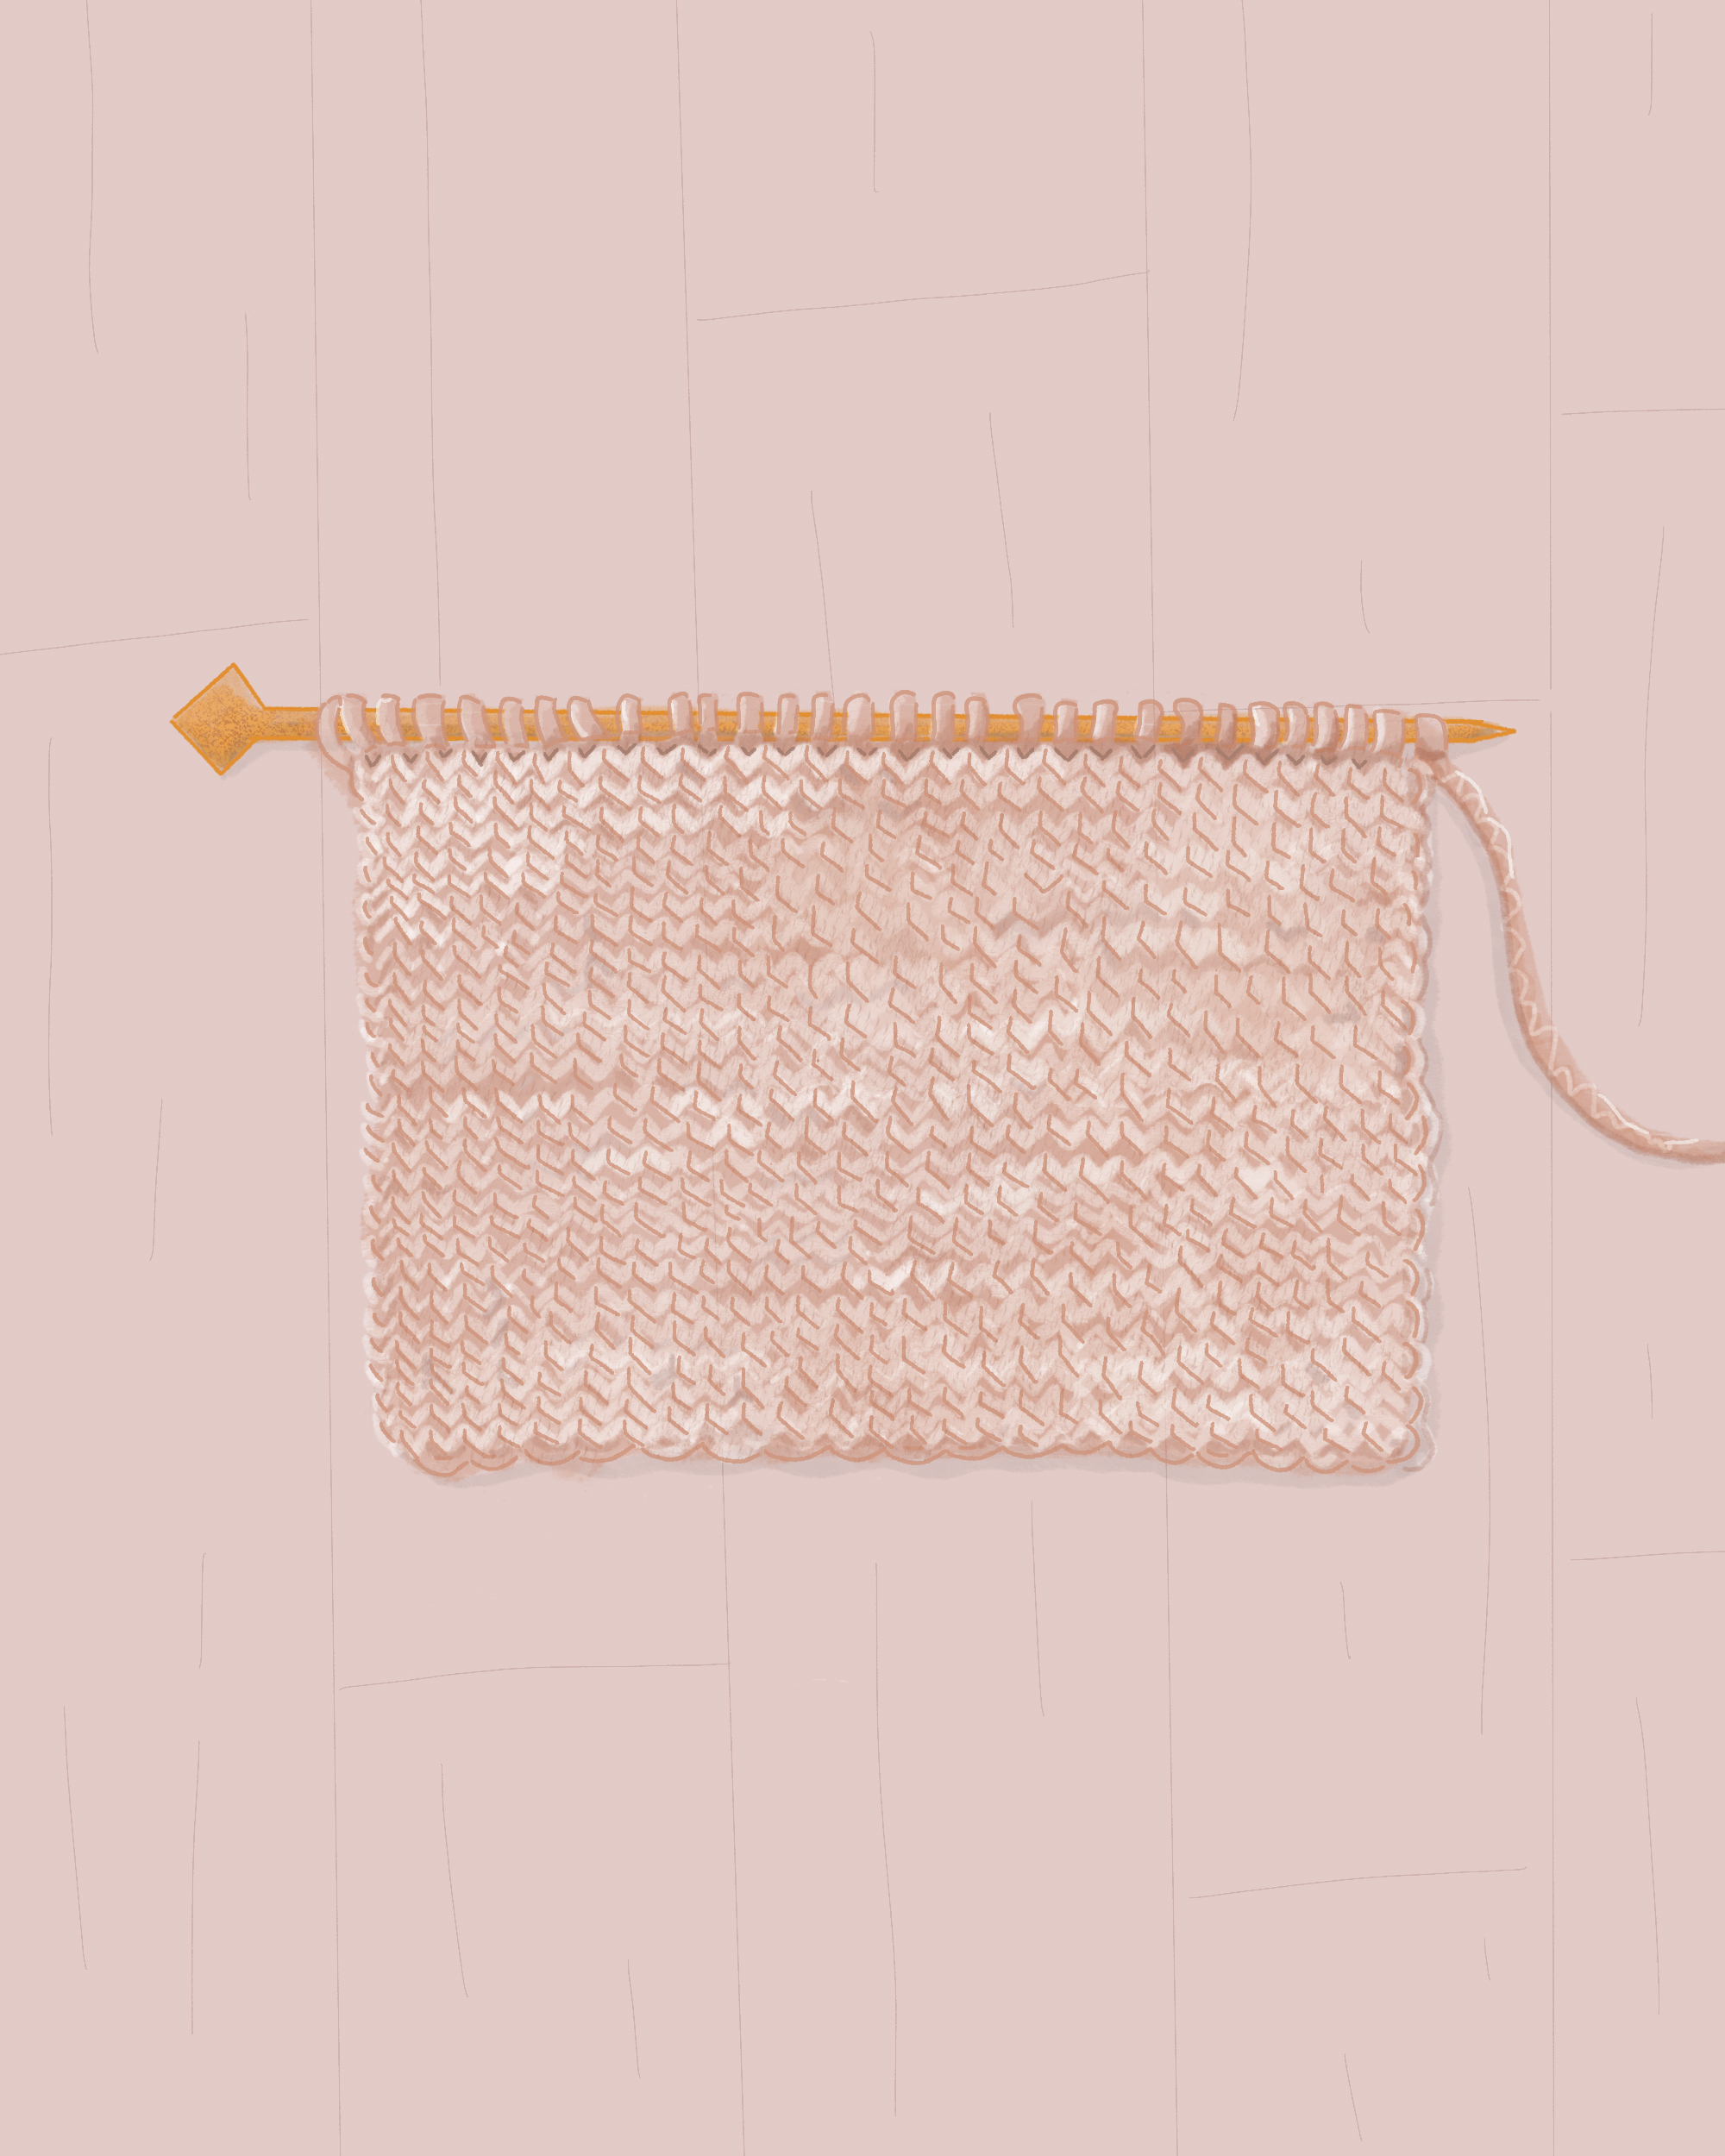 The Stockinette Stitch: What Is It and How Do I Knit It?